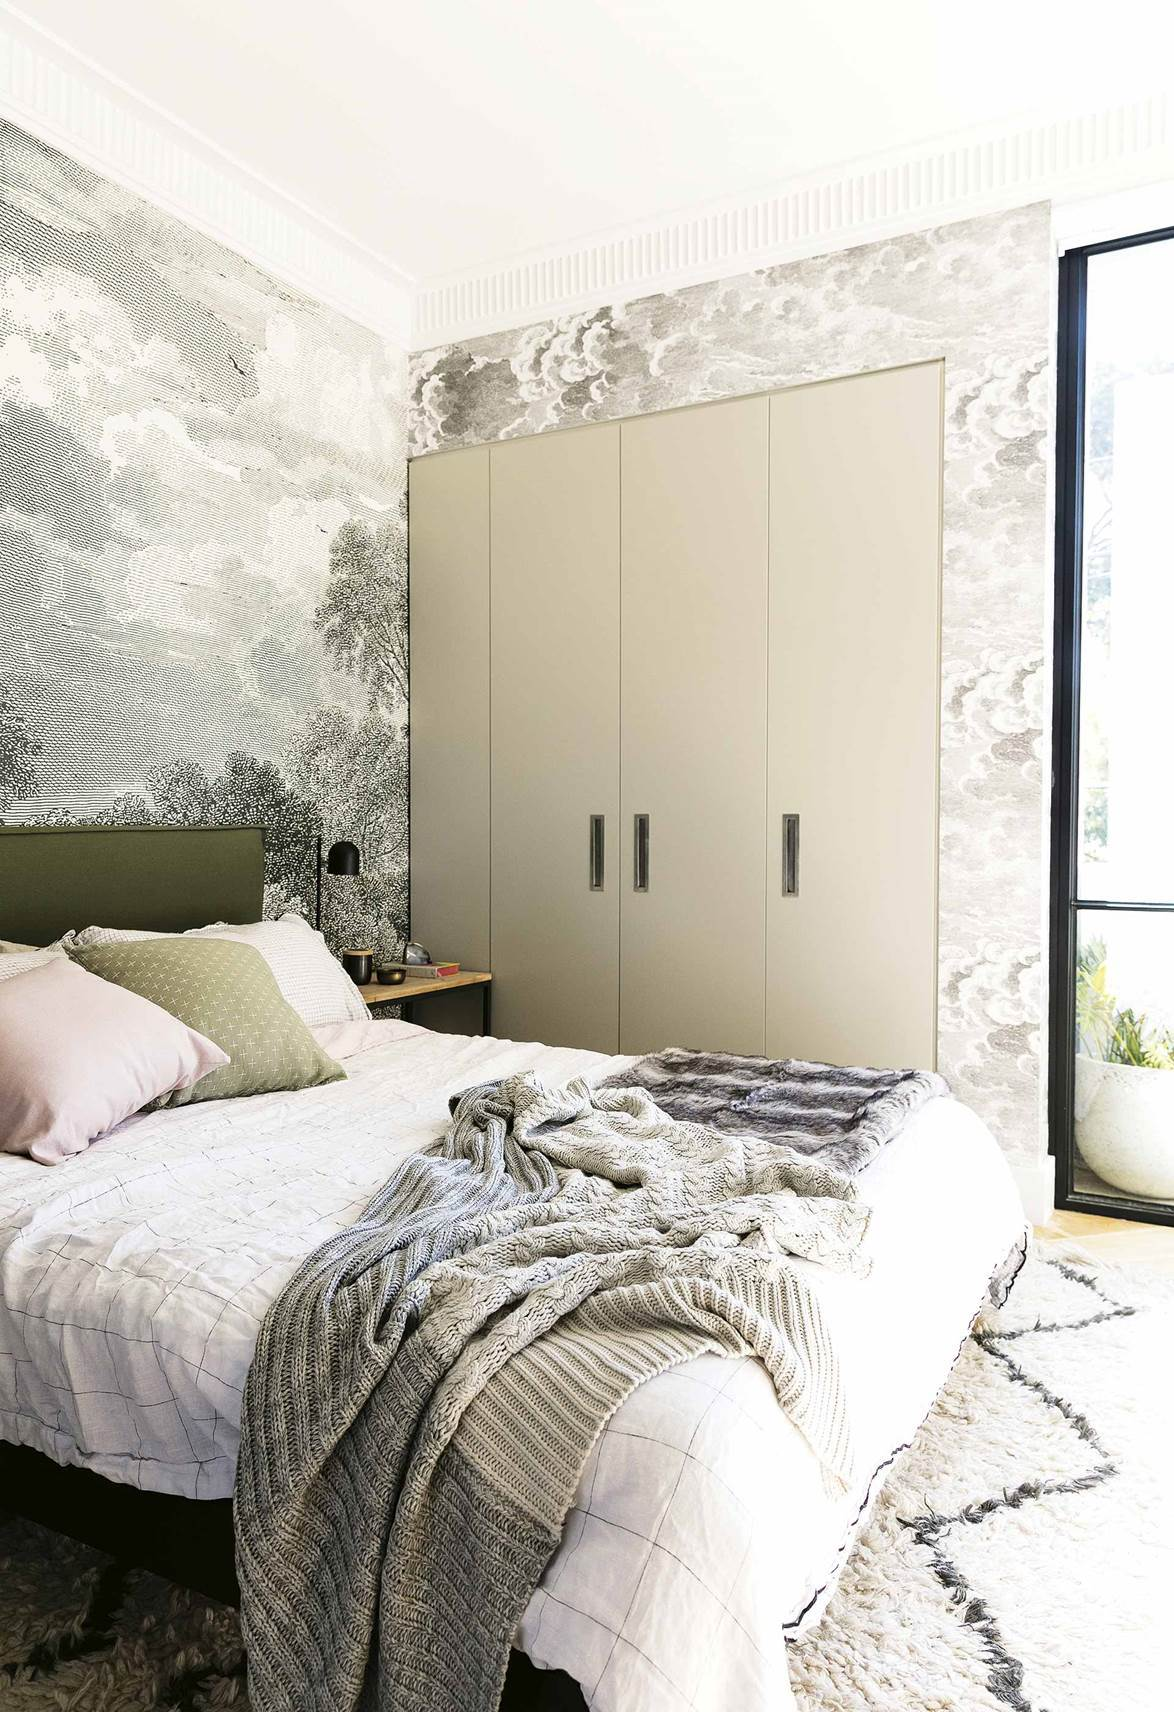 """In stylist [Jono Fleming's apartment](https://www.homestolove.com.au/jono-fleming-apartment-16899